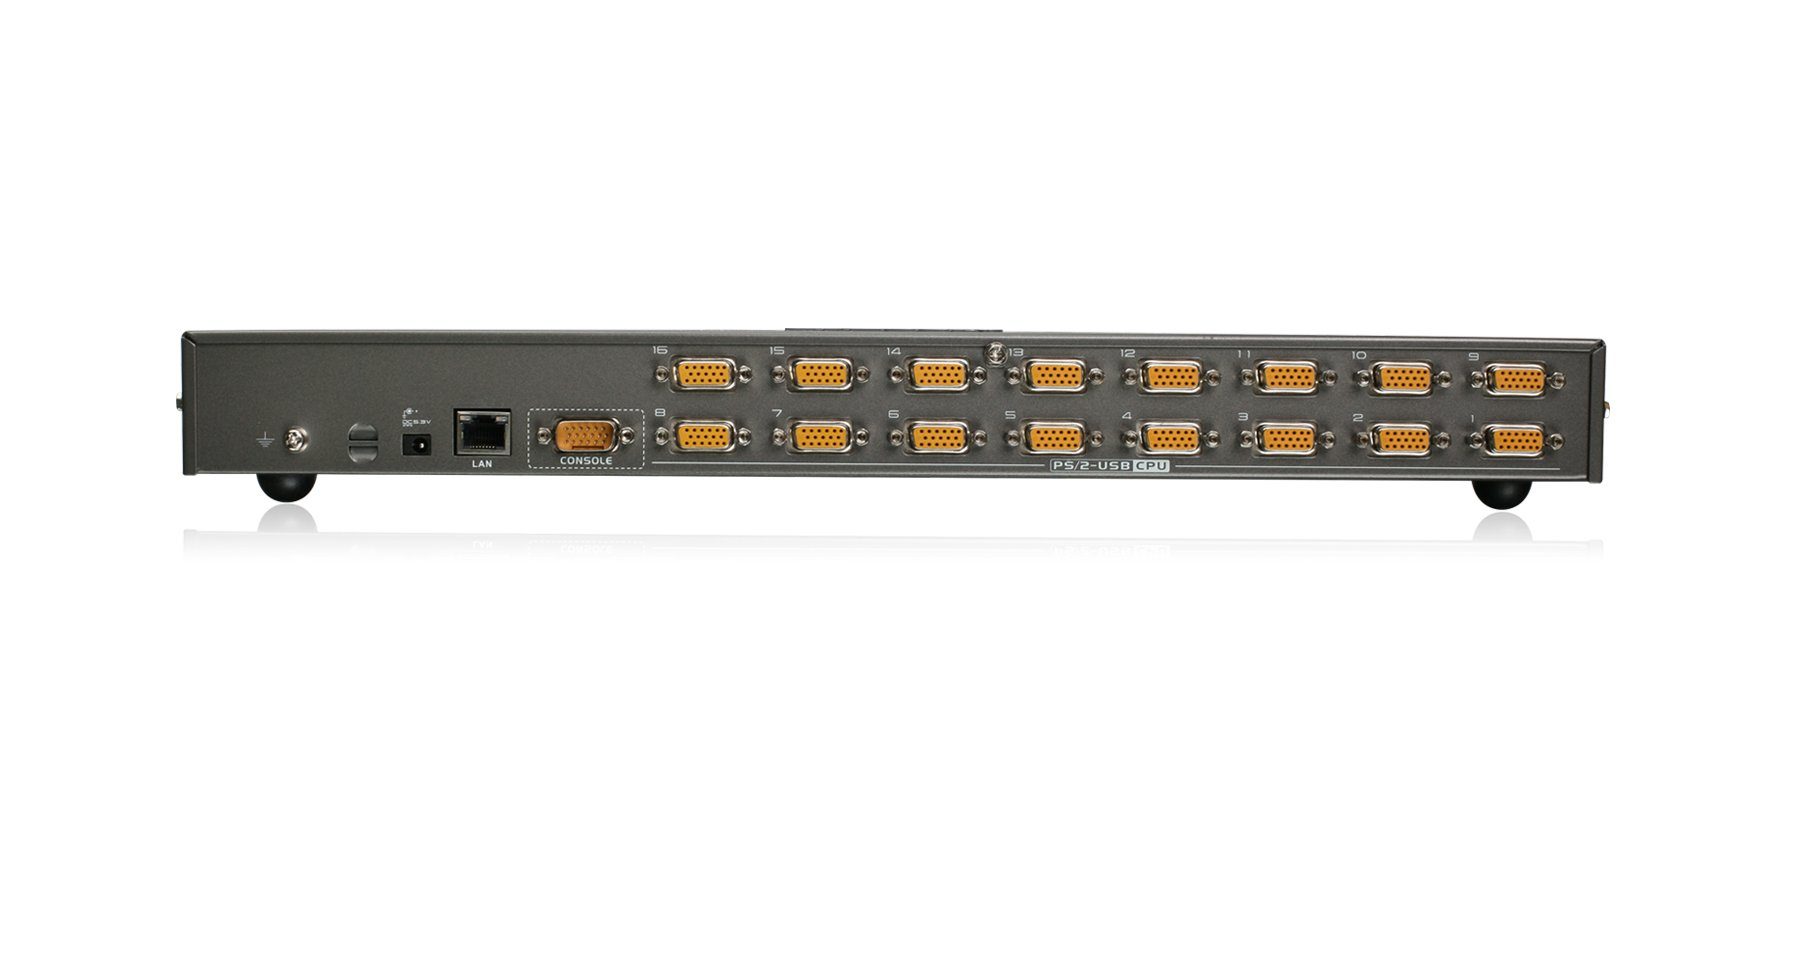 IOGEAR 16-Port IP Based KVM Kit with PS/2 and USB KVM Cables, TAA Compliant, GCS1816iKITTAA by IOGEAR (Image #2)